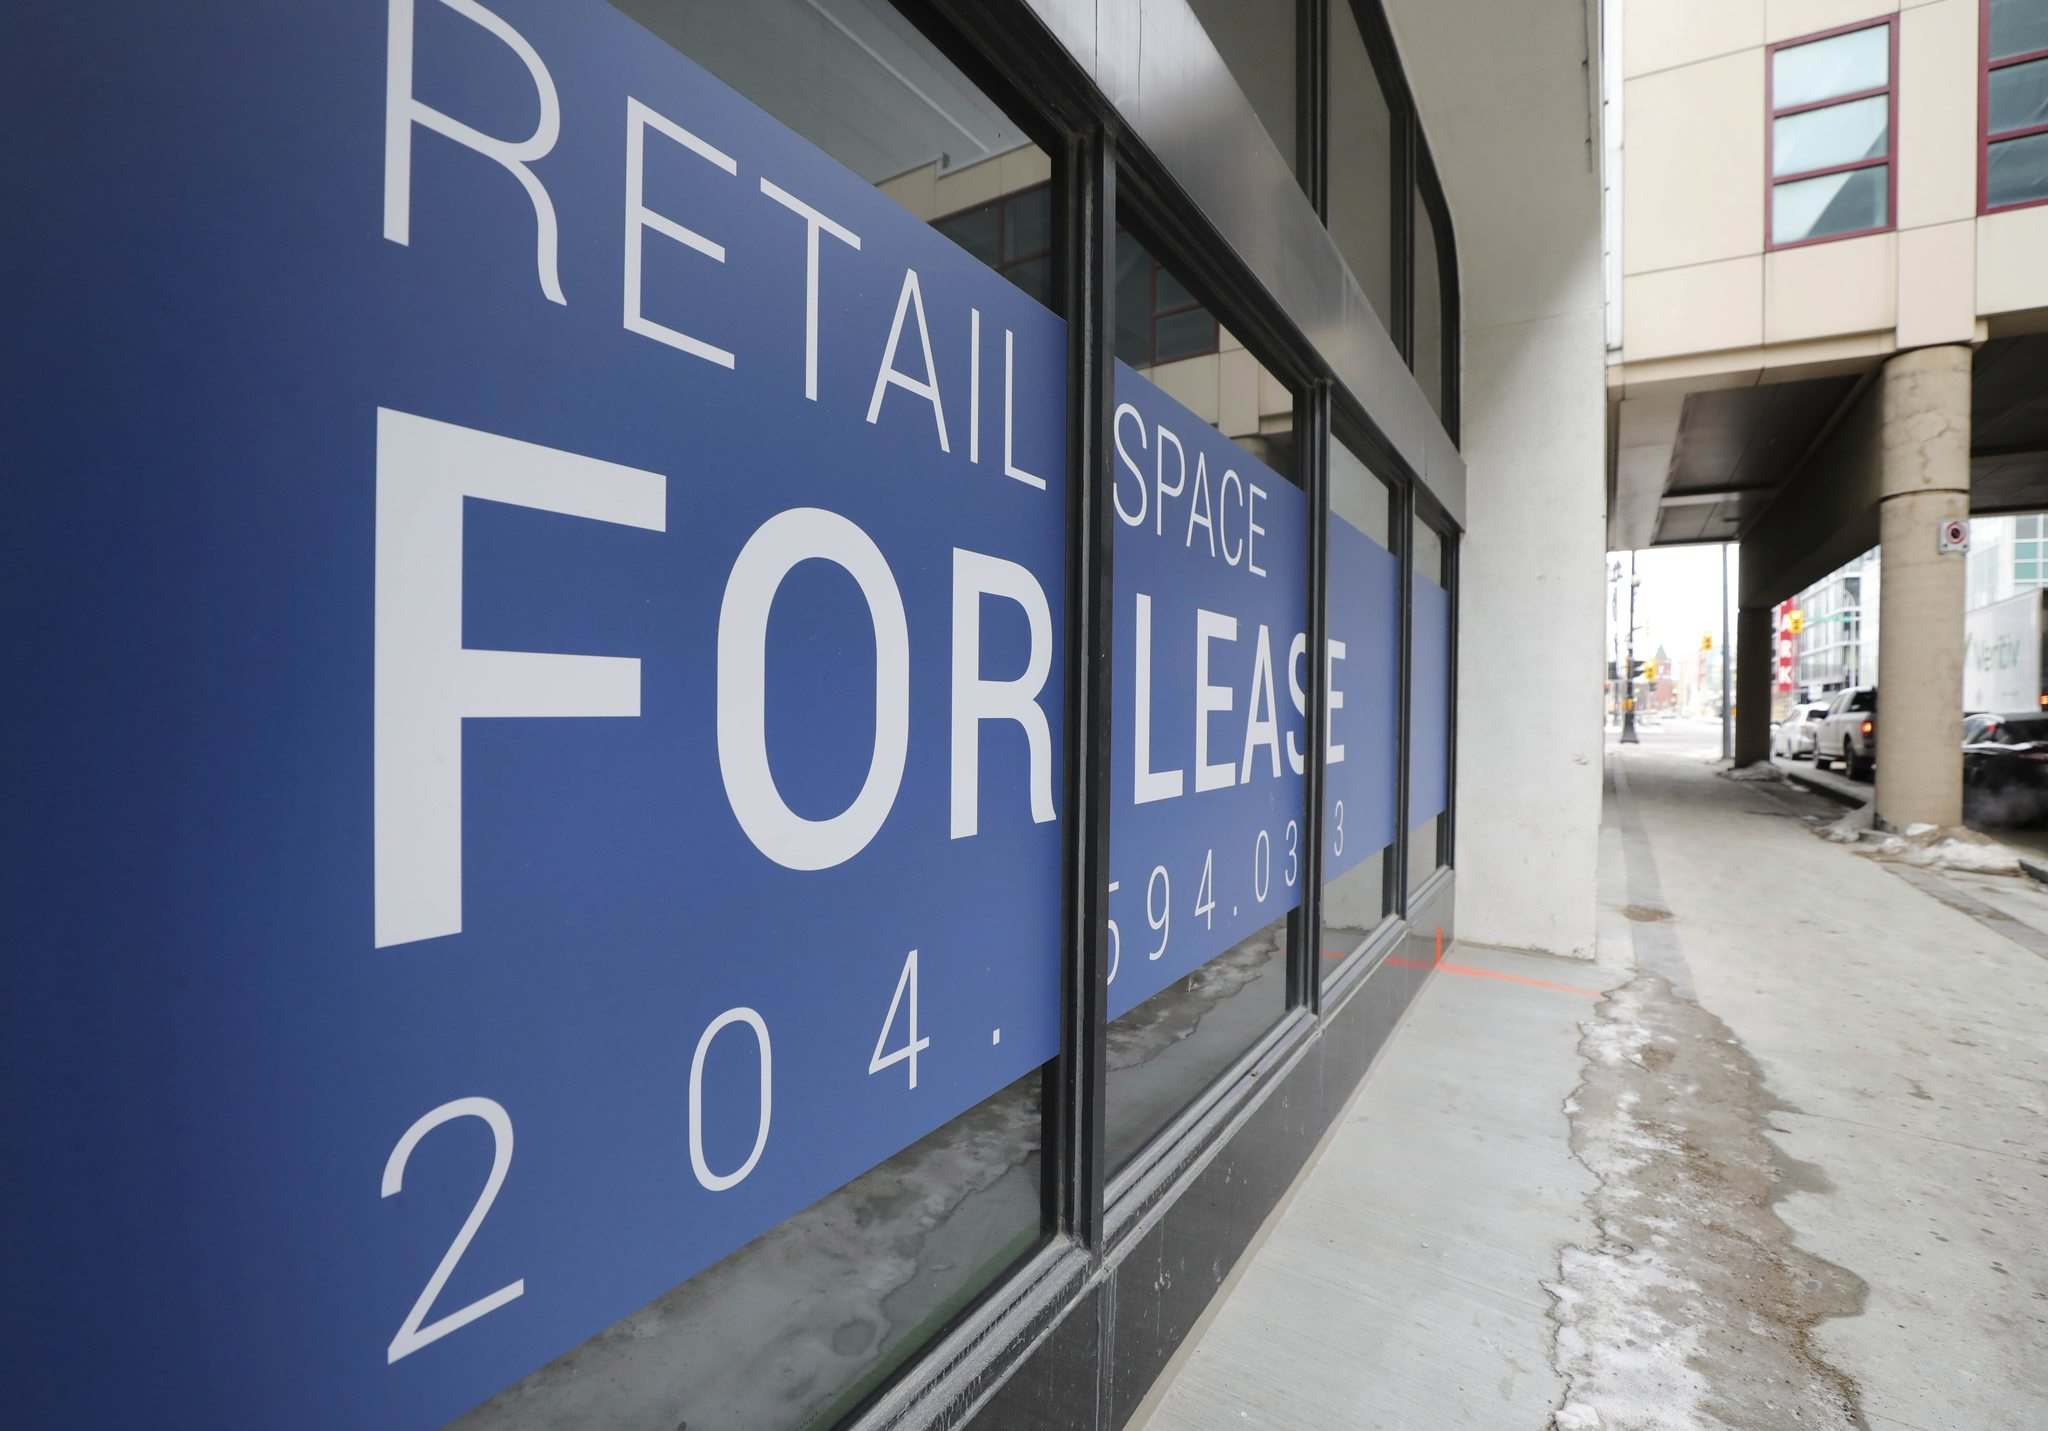 RUTH BONNEVILLE / WINNIPEG FREE PRESS</p><p>For Lease, signs are posted on many retail and office buildings like this one on Hargrave next to the MTS Centre.</p>